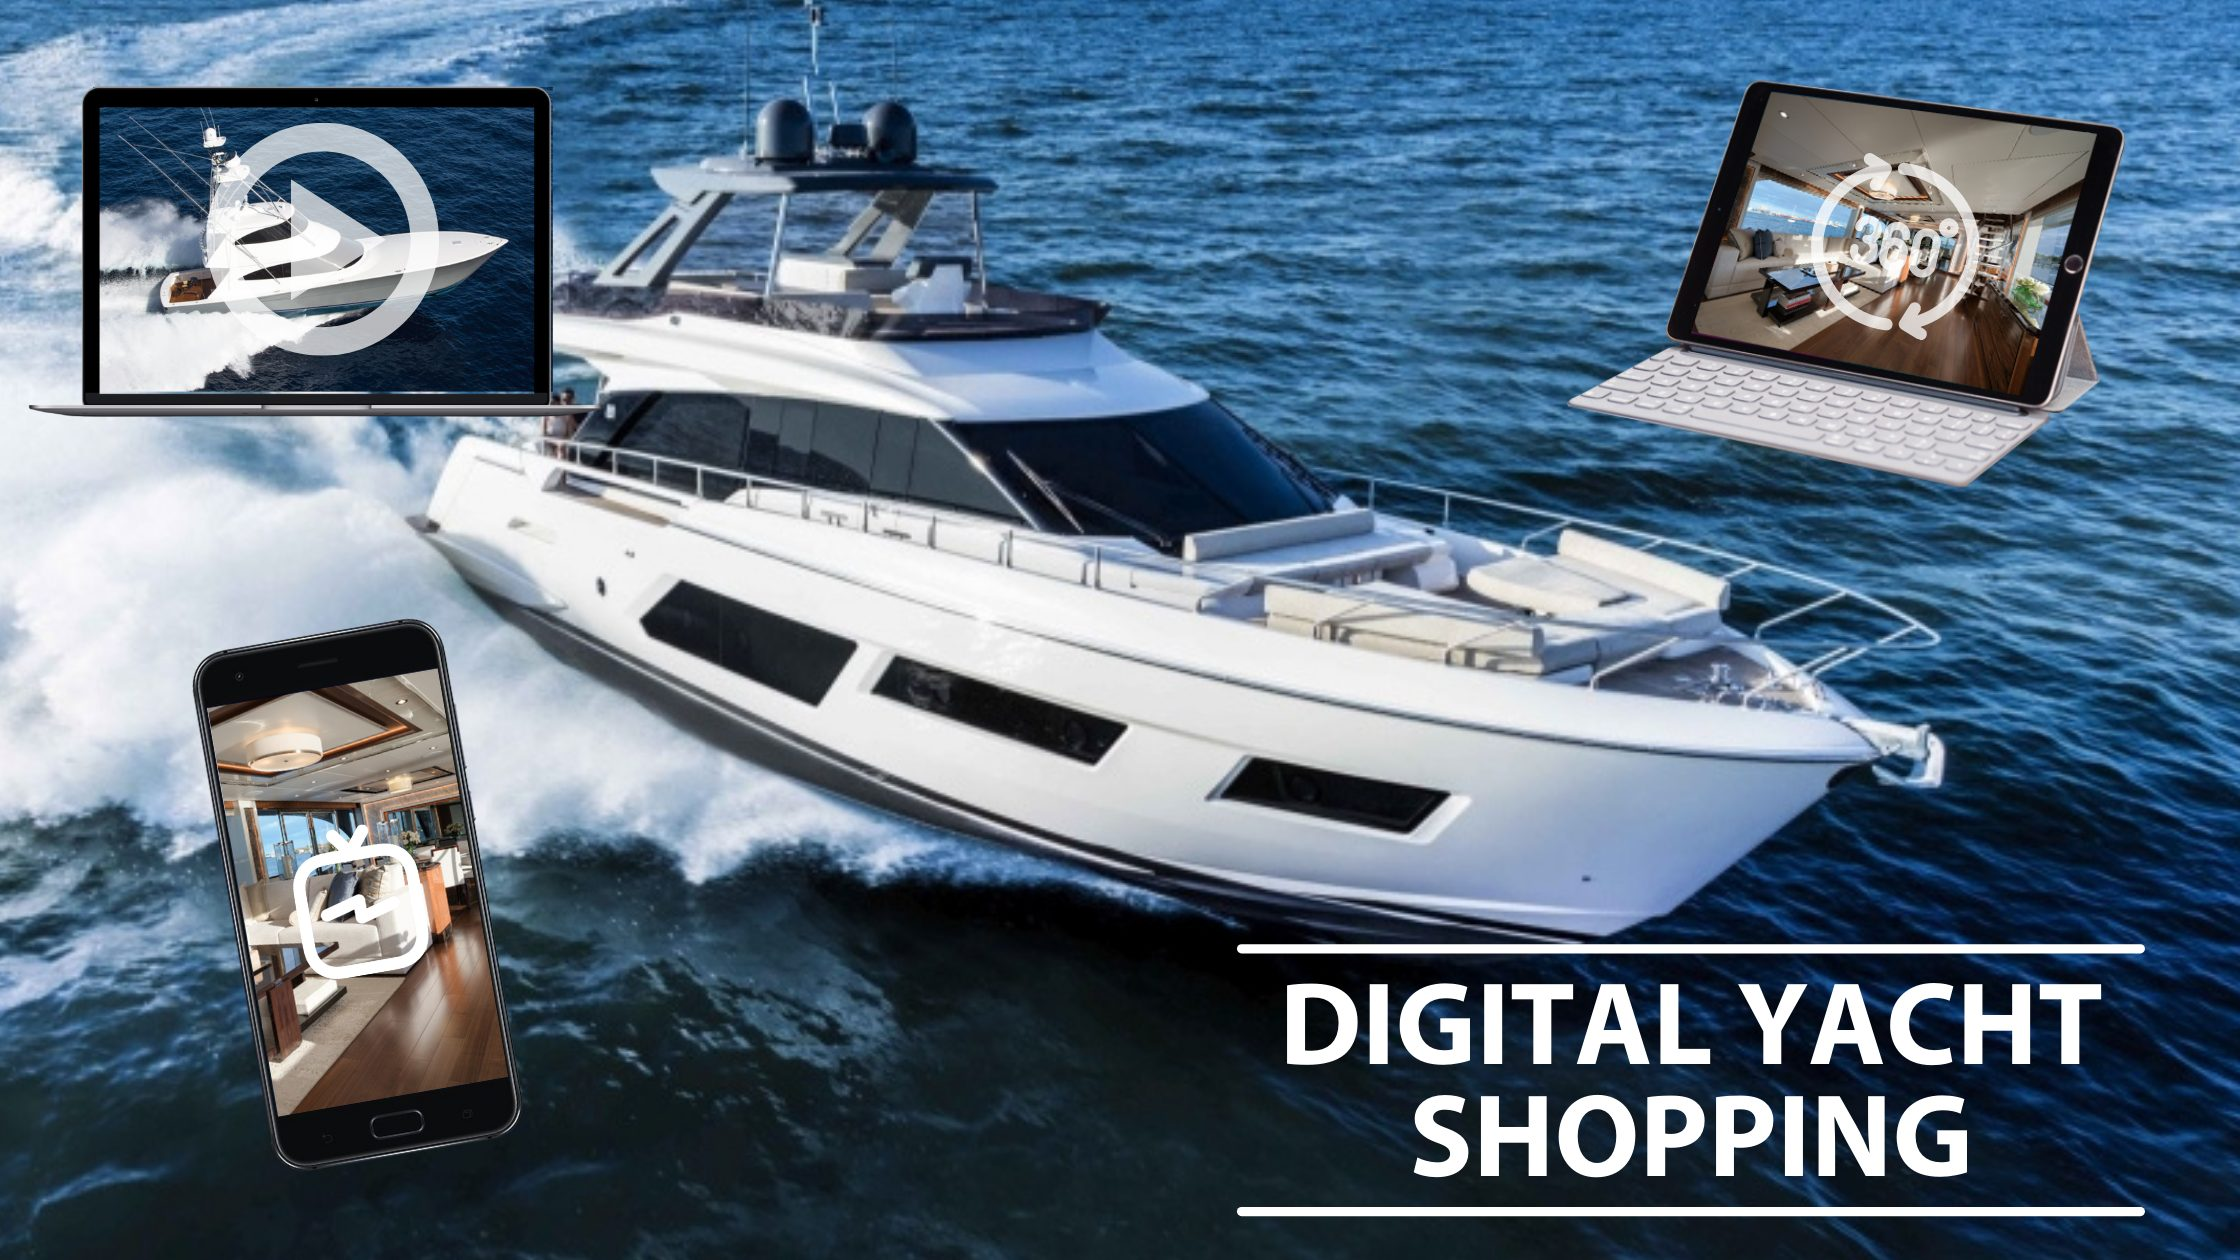 Digital Yacht Shopping – How Shopping For A Yacht Has Changed